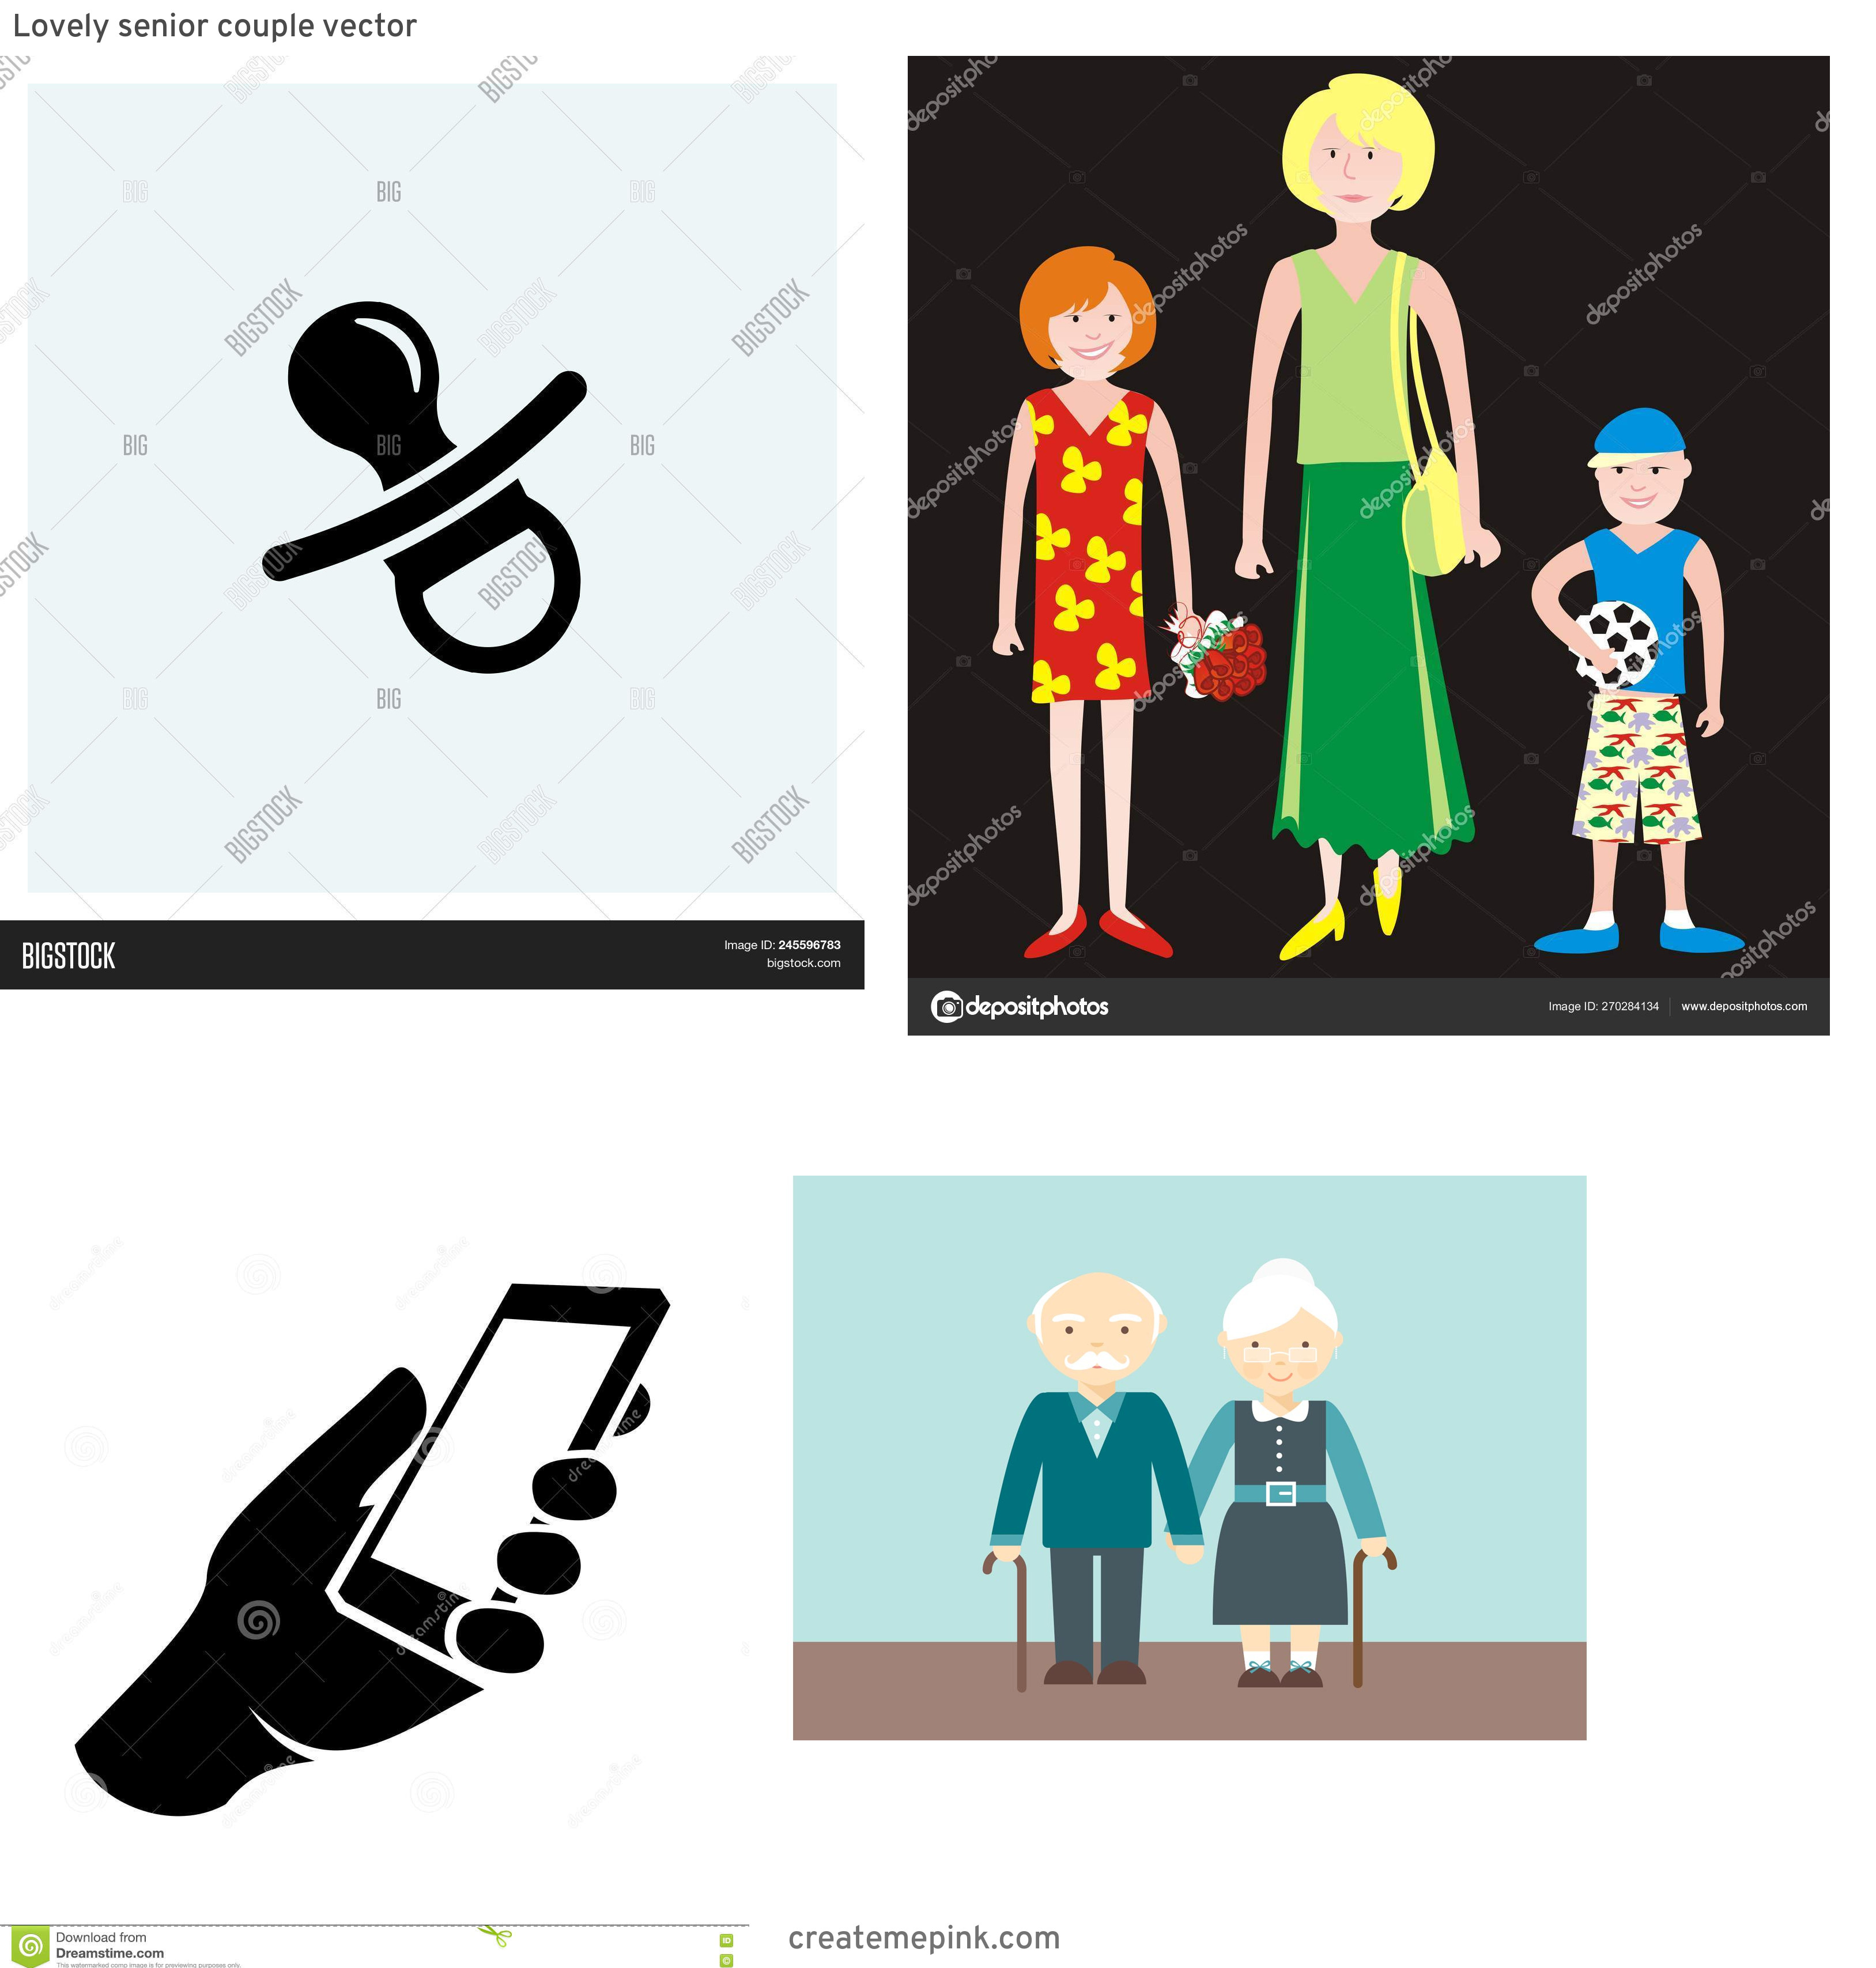 Daughter Vector Icons: Lovely Senior Couple Vector